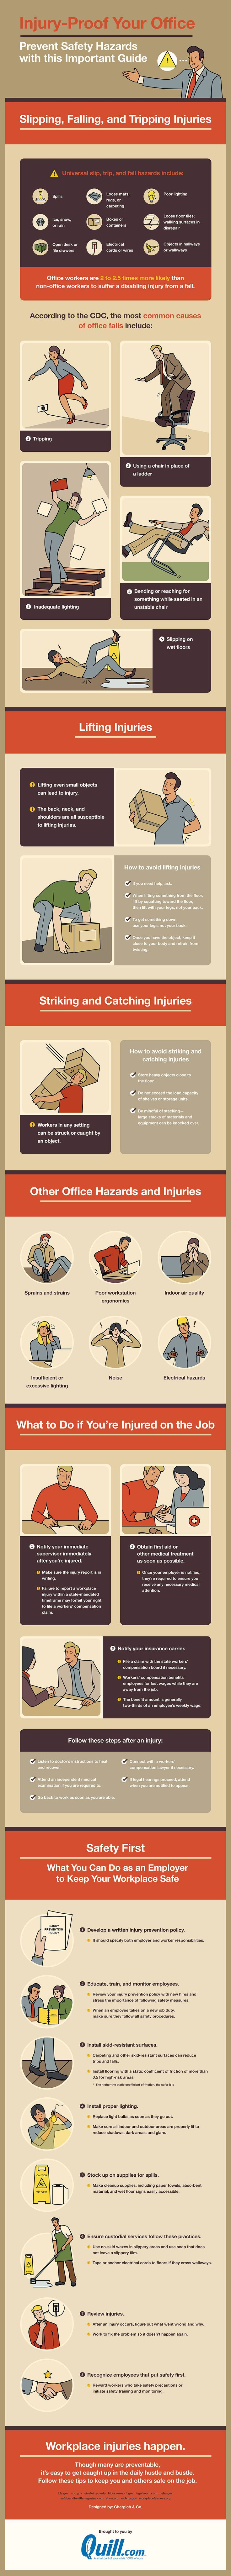 Injury-Proof Your Office Prevent Safety Hazards with this Important Guide